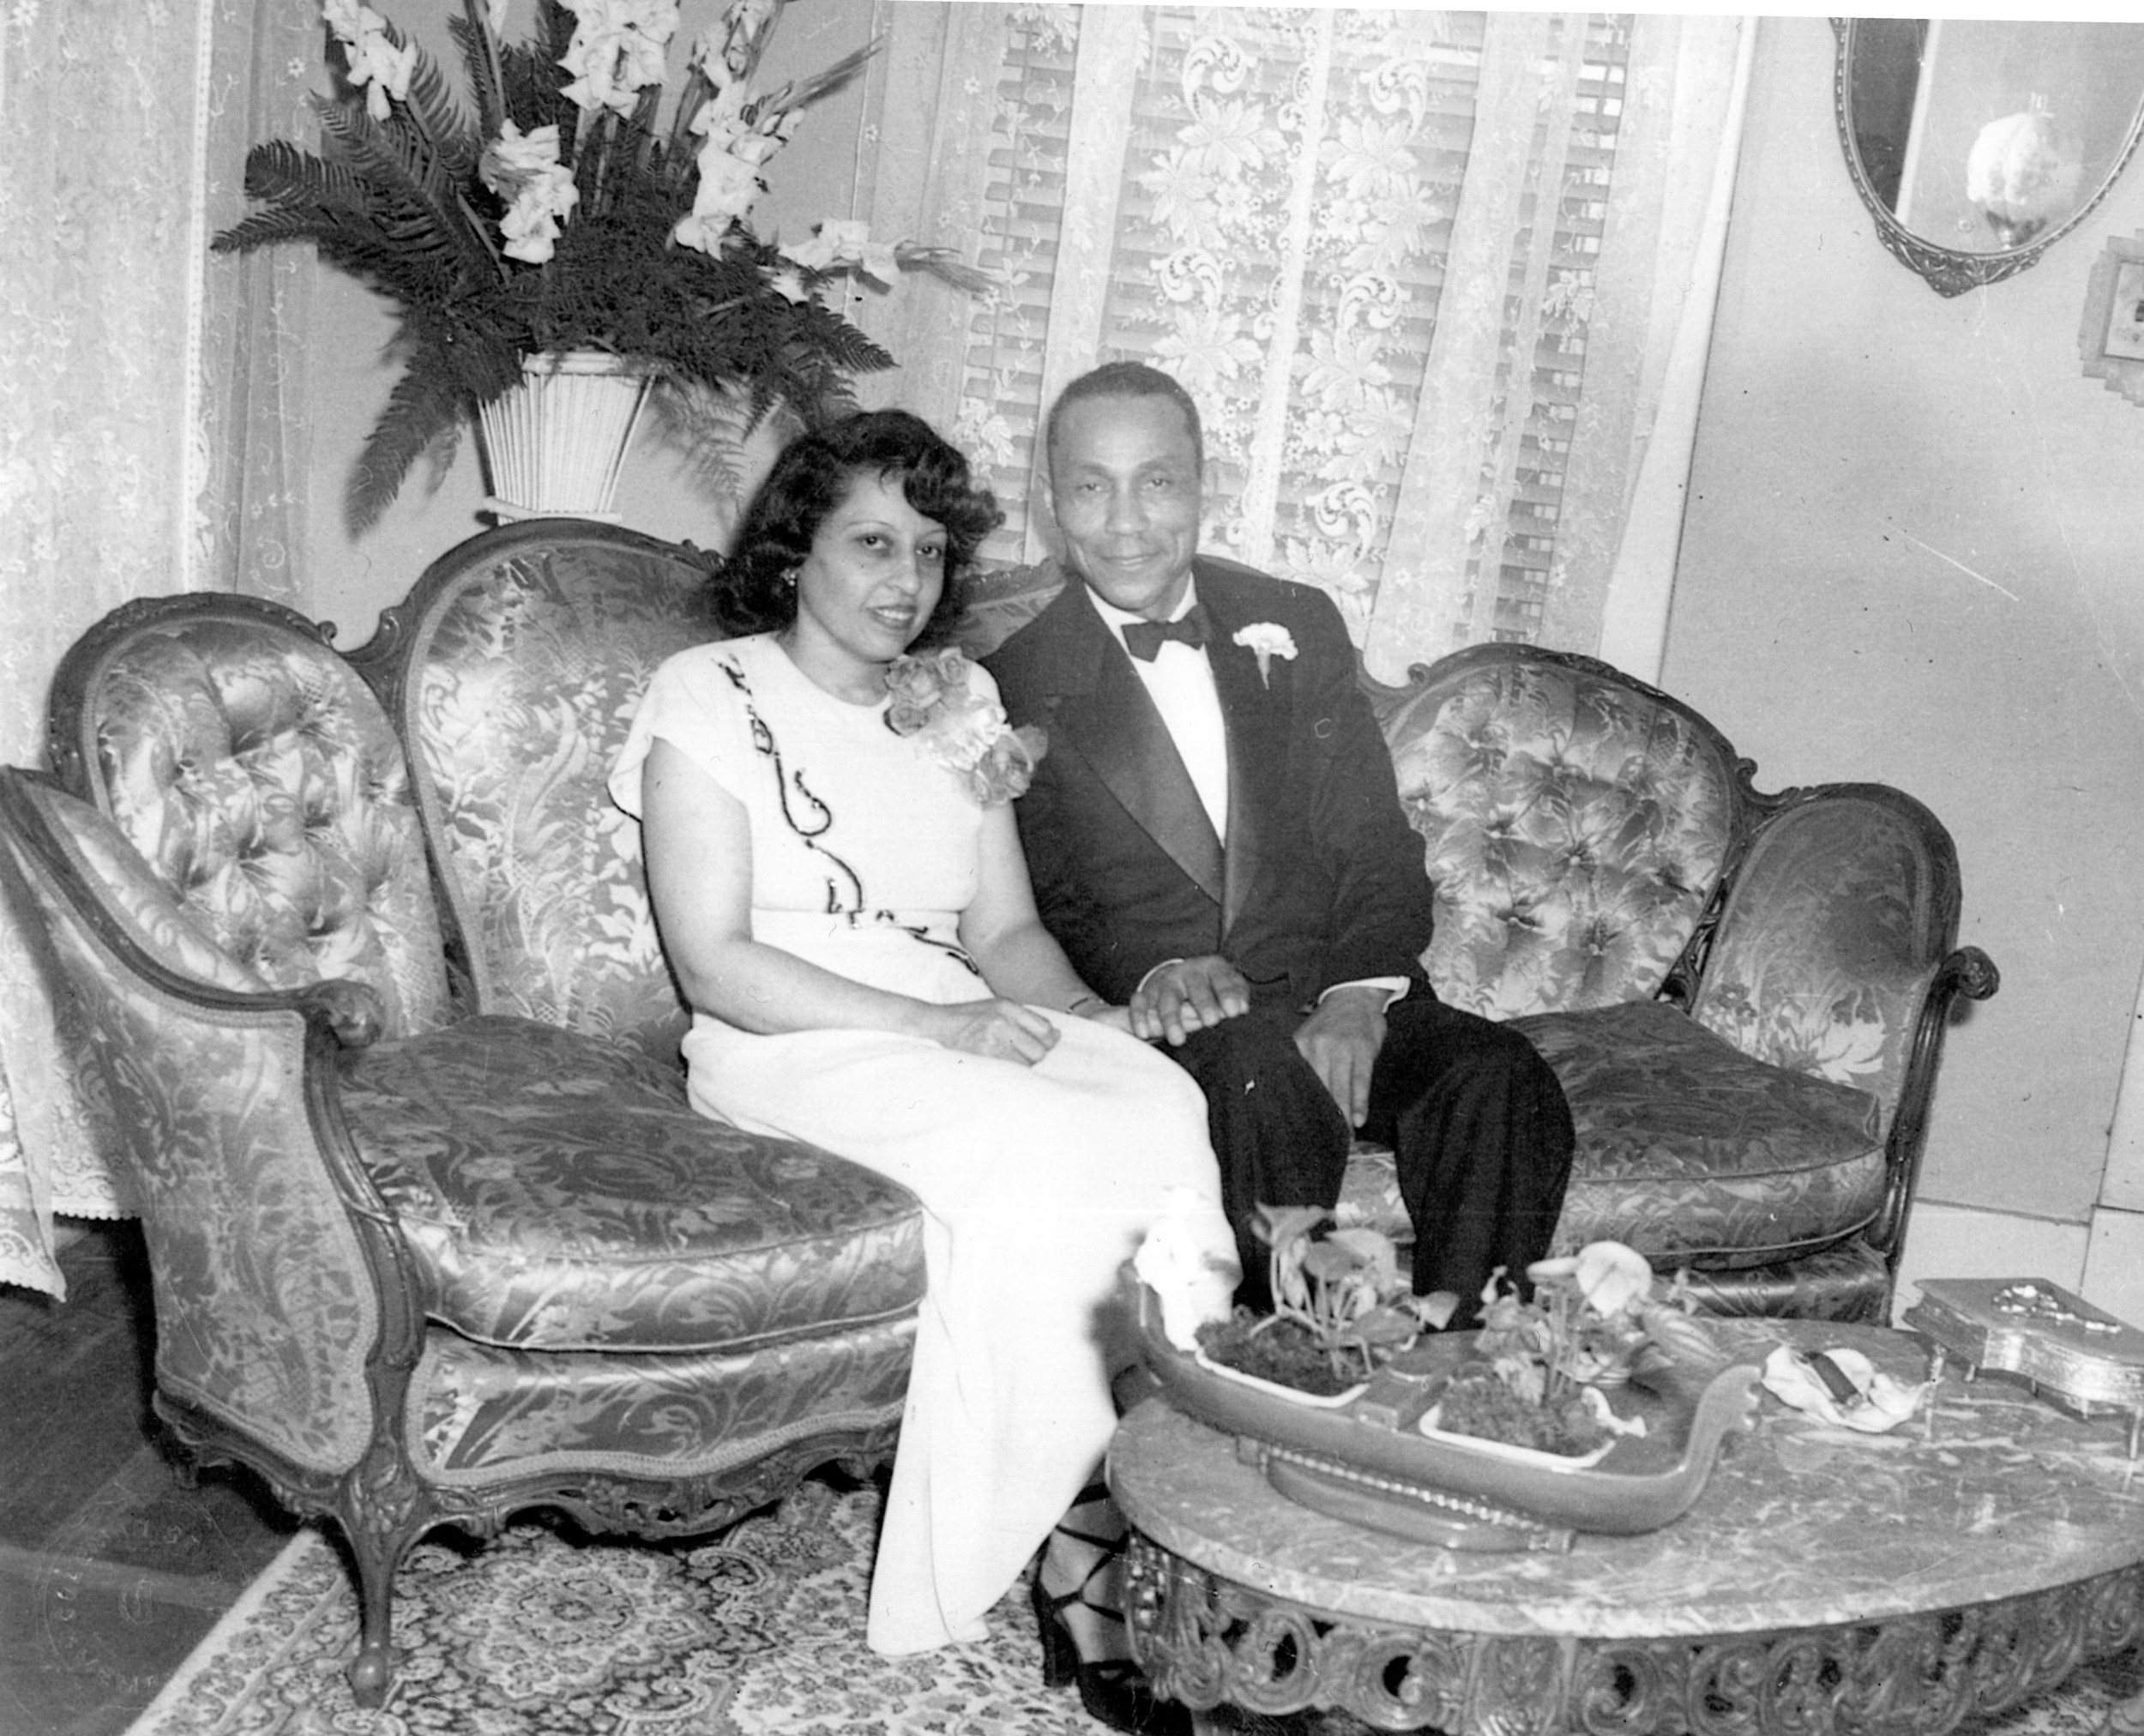 Erica's great-grandparents in their living room on Parkway, circa 1950's.